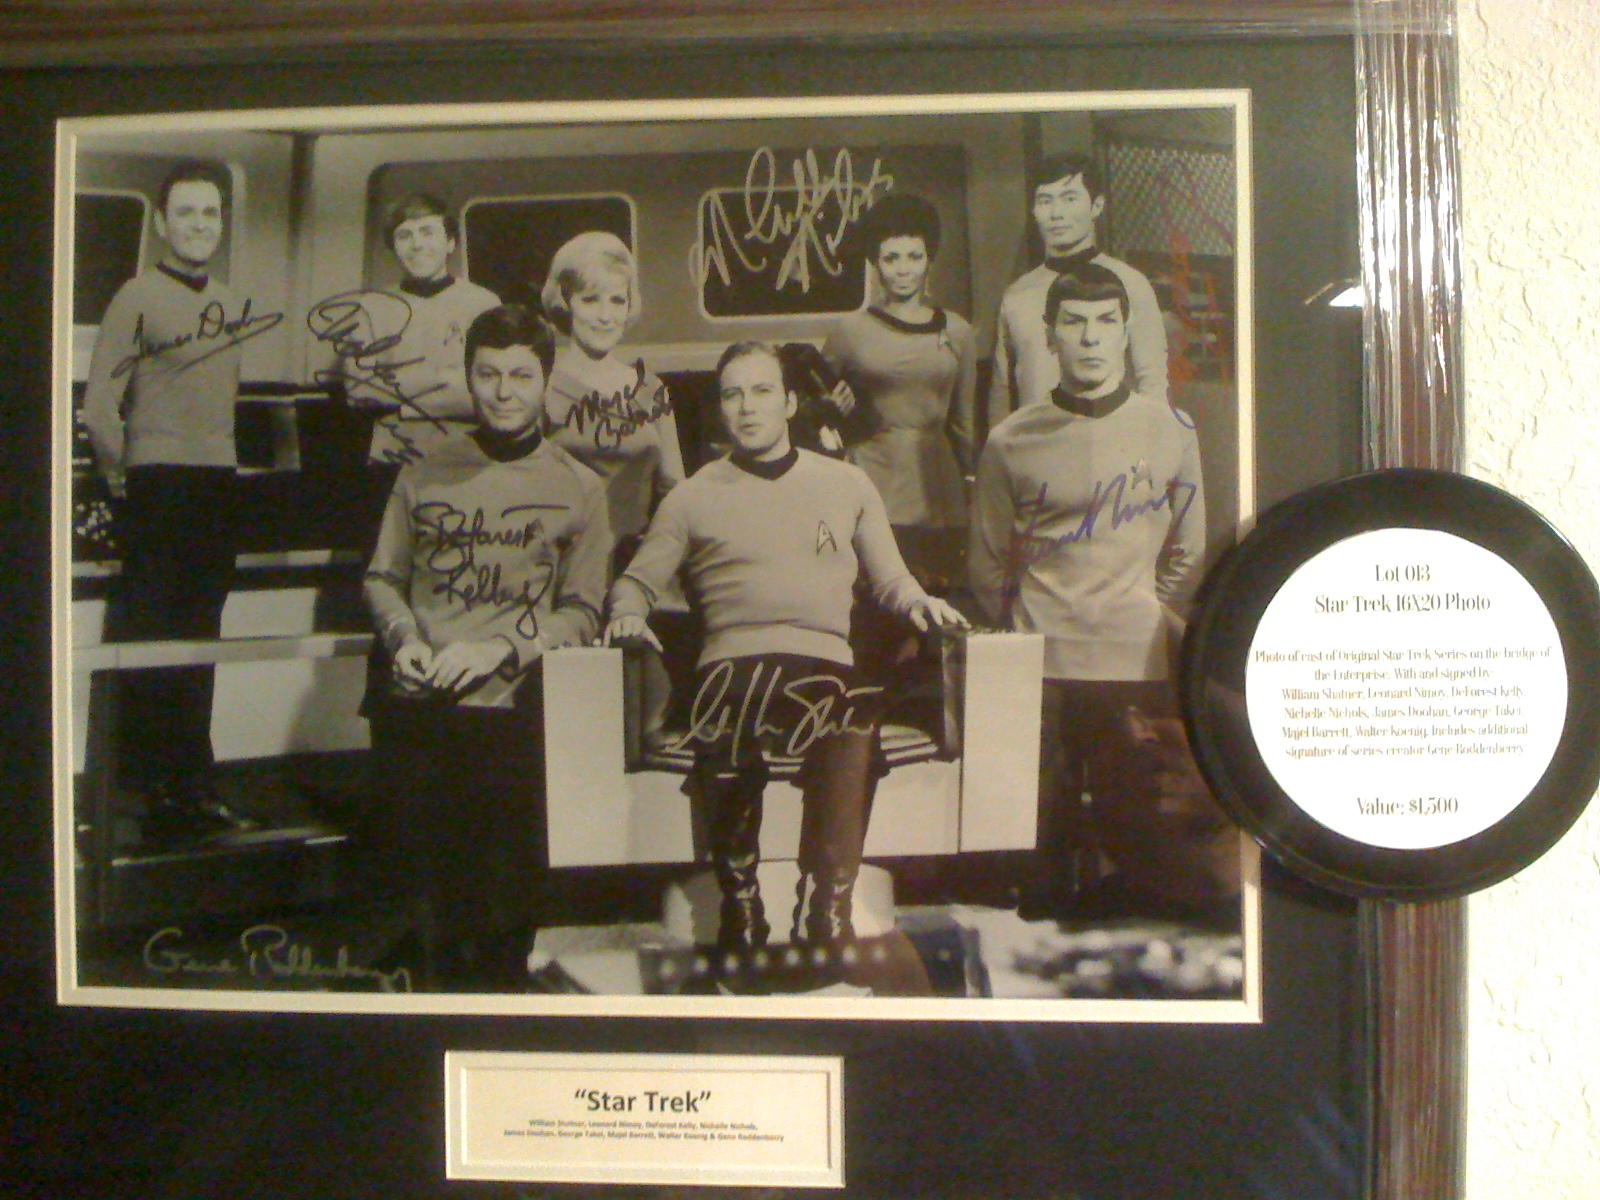 Star Trek TOS Autograph Photo